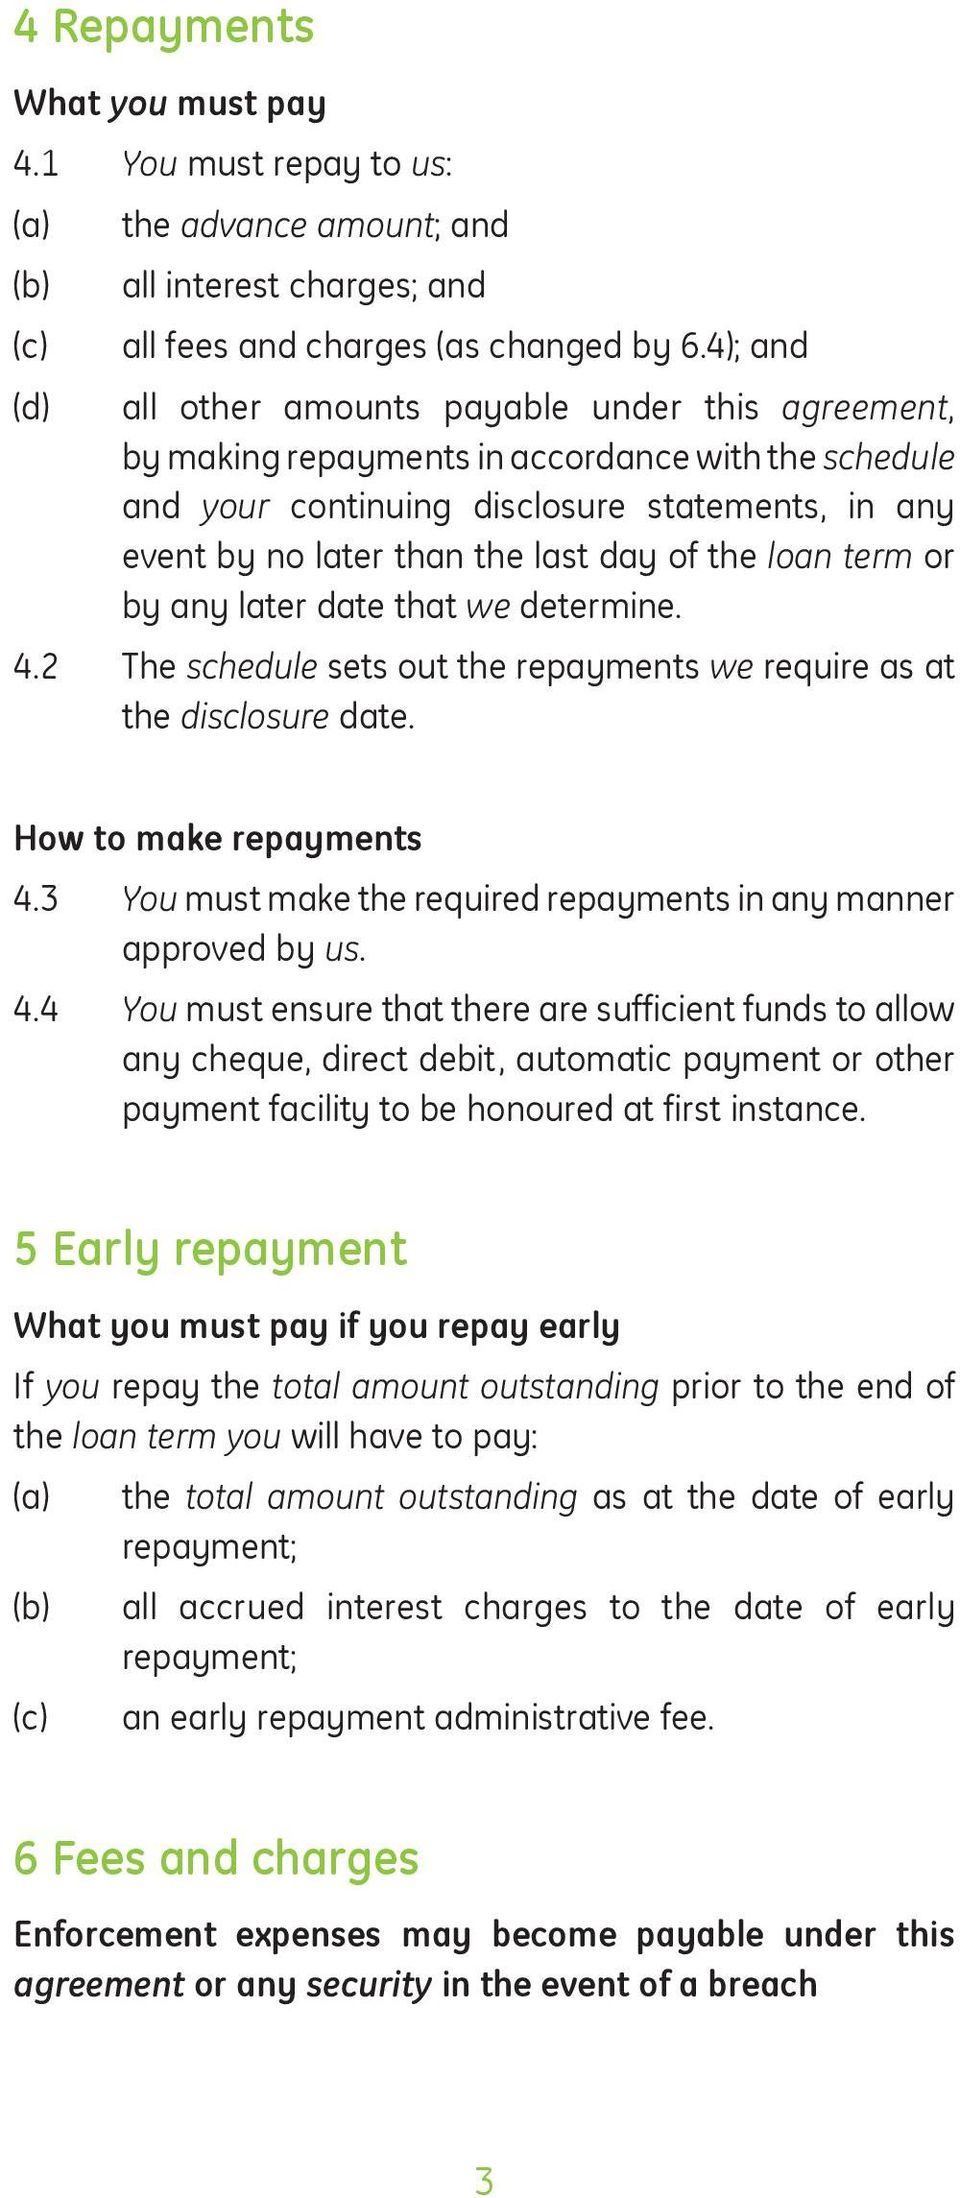 the loan term or by any later date that we determine. 4.2 The schedule sets out the repayments we require as at the disclosure date. How to make repayments 4.